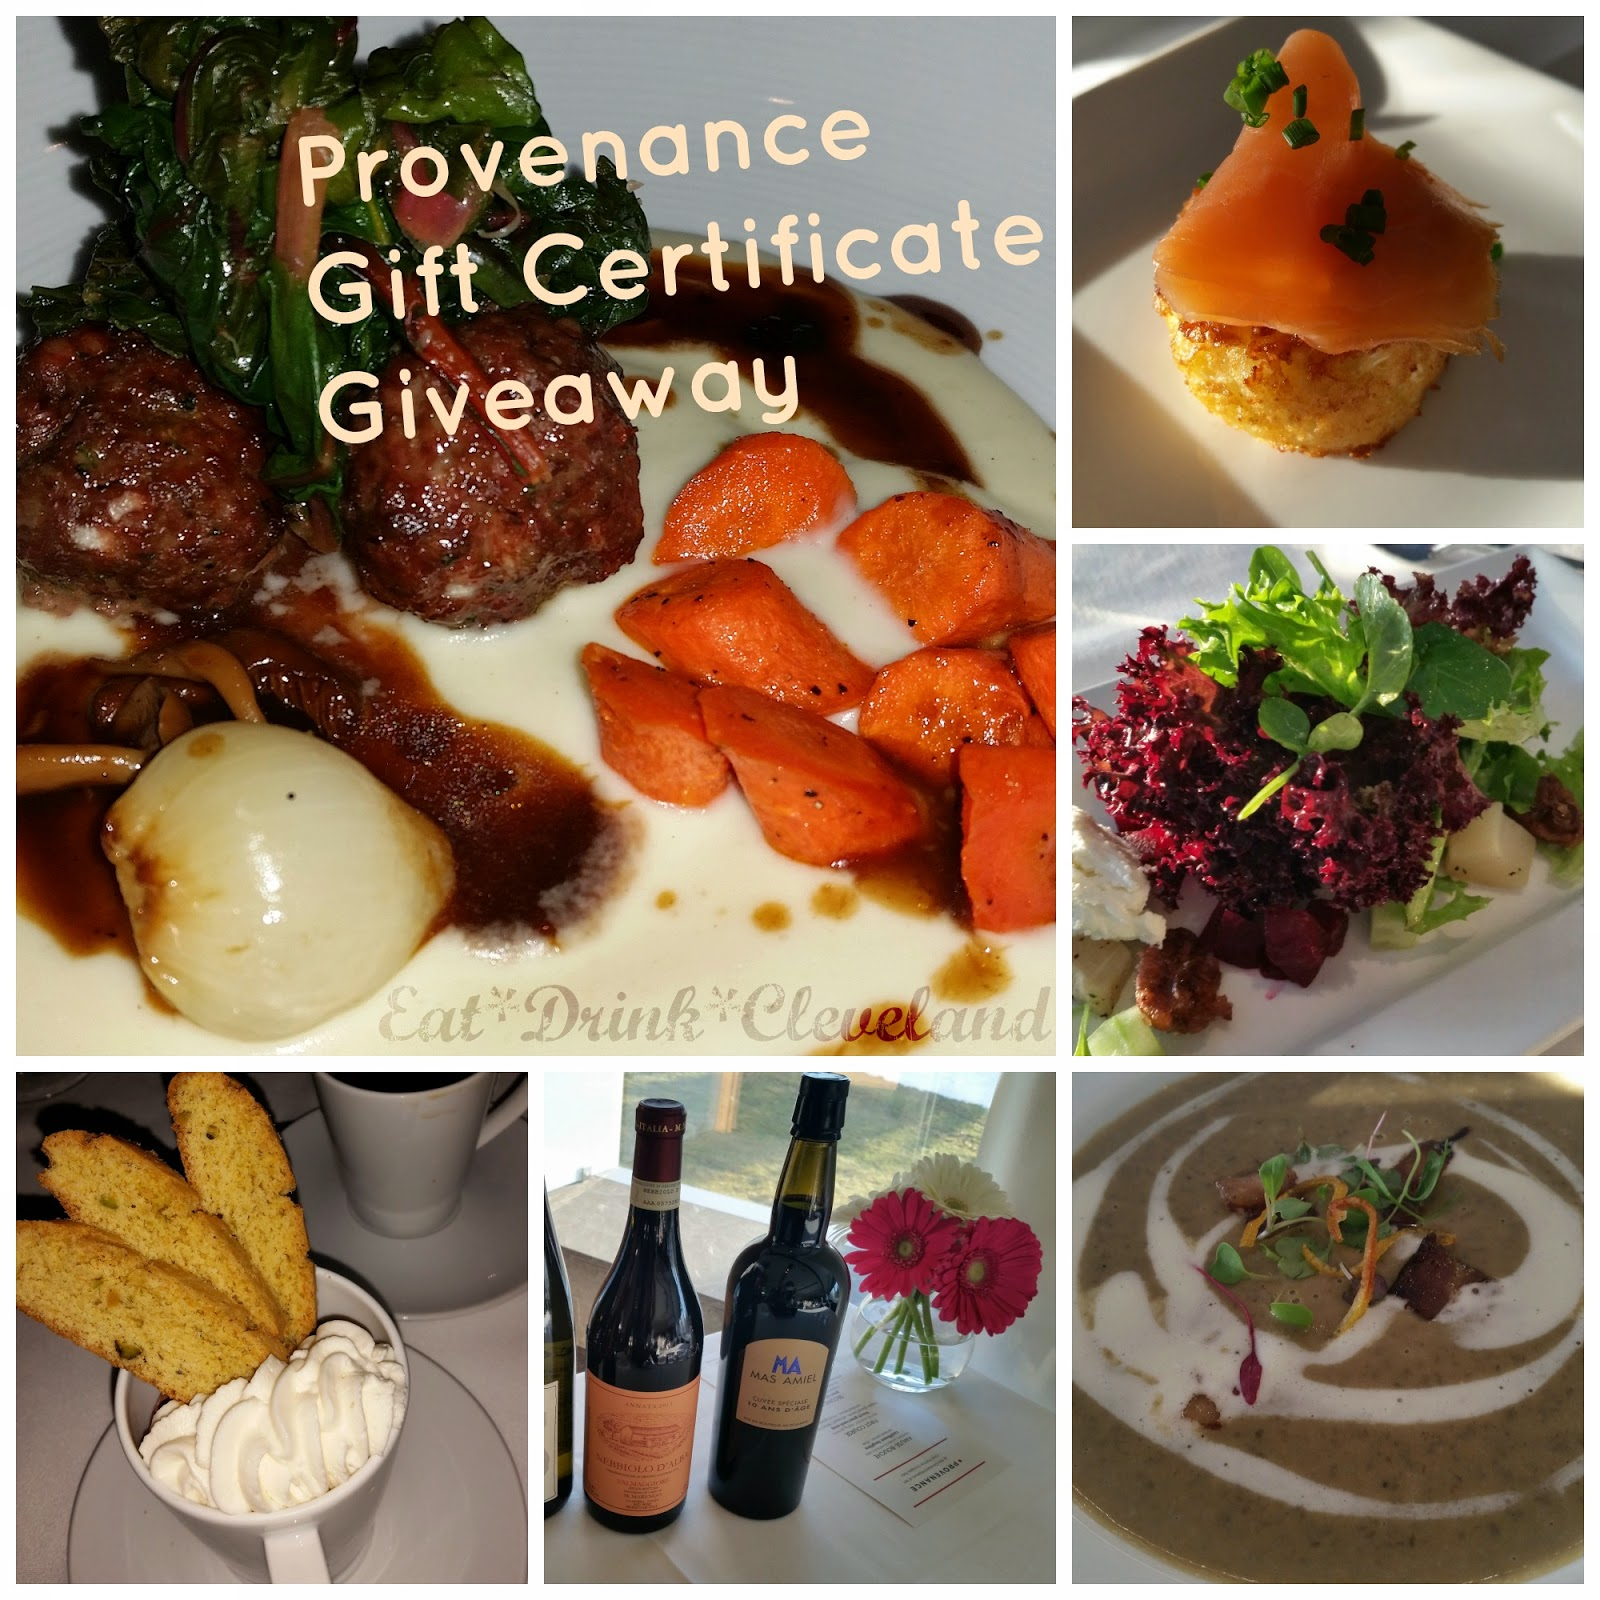 Food and Wine Inspired by Art Provenance Cleveland Museum of Art